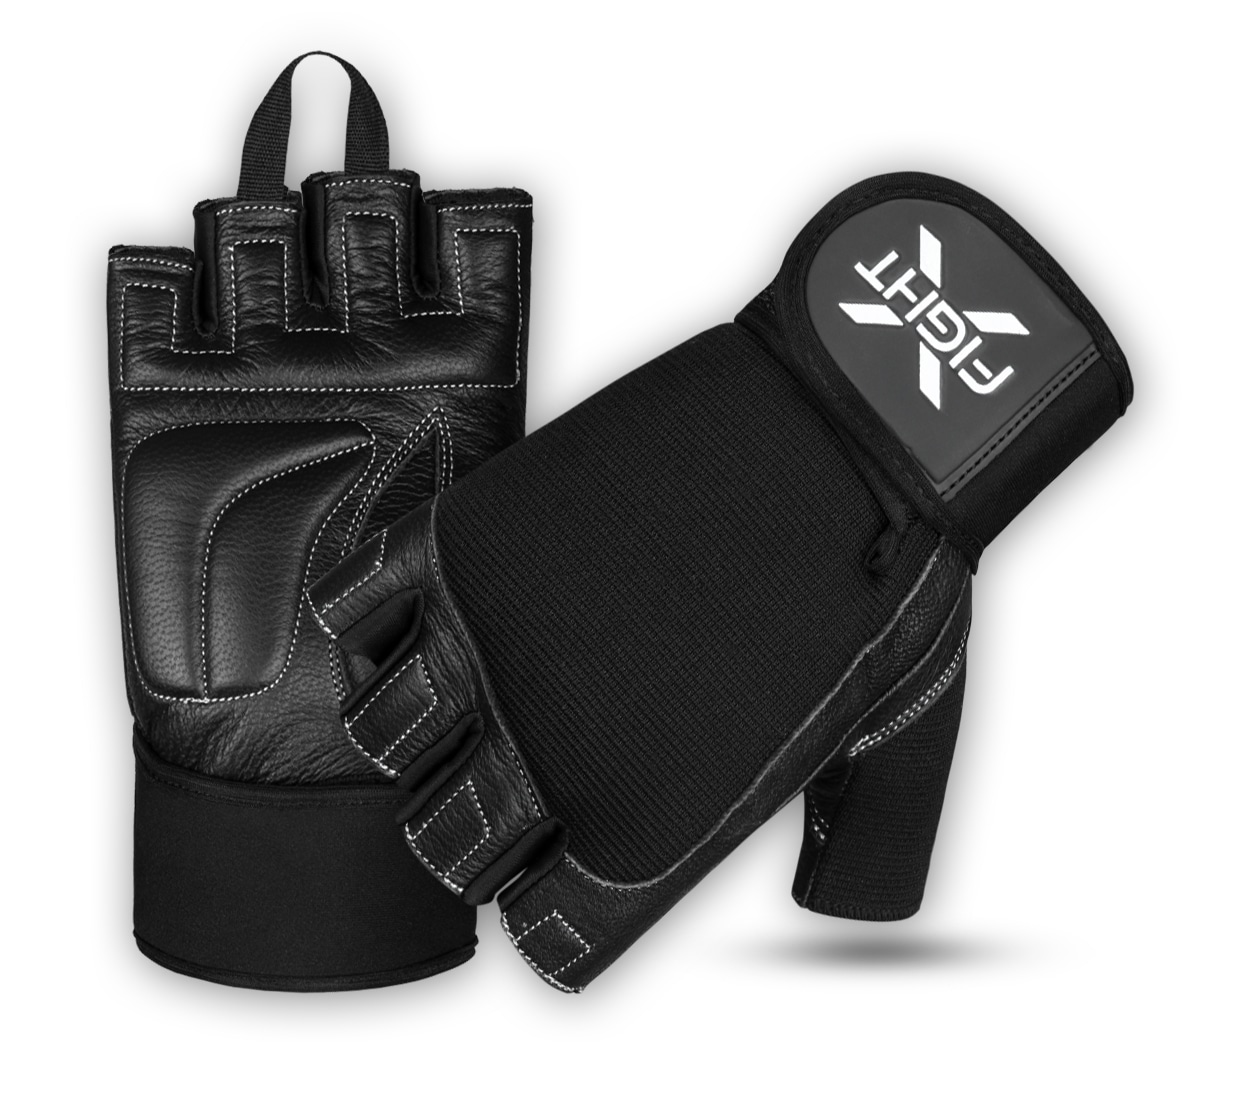 WEIGHT LIFTING TRAINING GYM GLOVES for Workout, Weightlifting Gym Cross Training Pull Ups for men and woman